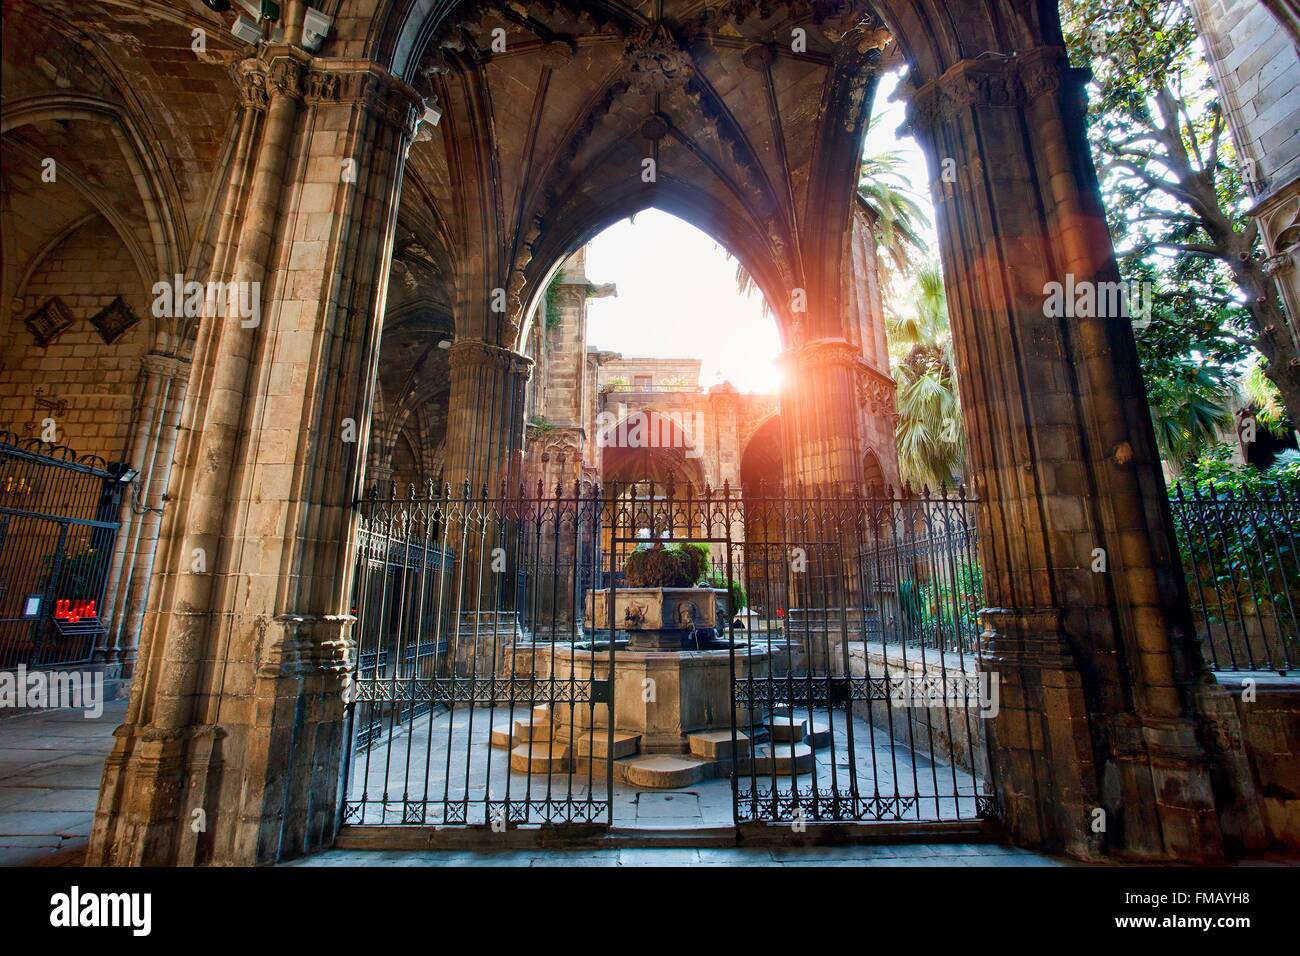 Spain, Catalonia, Barcelona, Barcelona's Cathedral - Stock Image